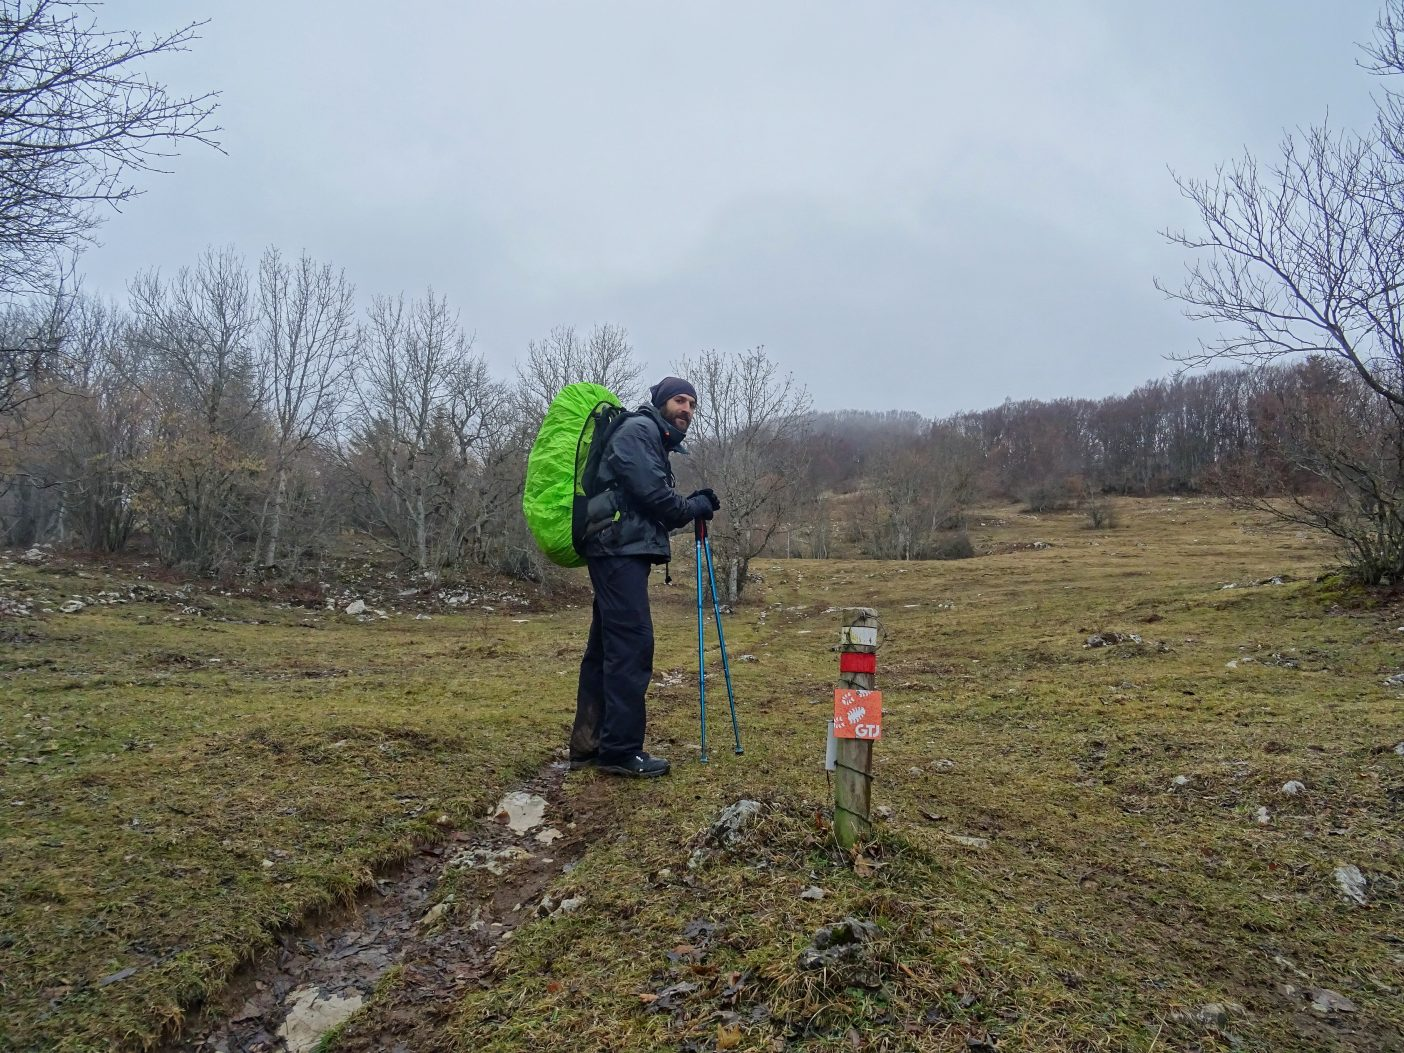 Hiker in the Jura Mountains with large rucksack on